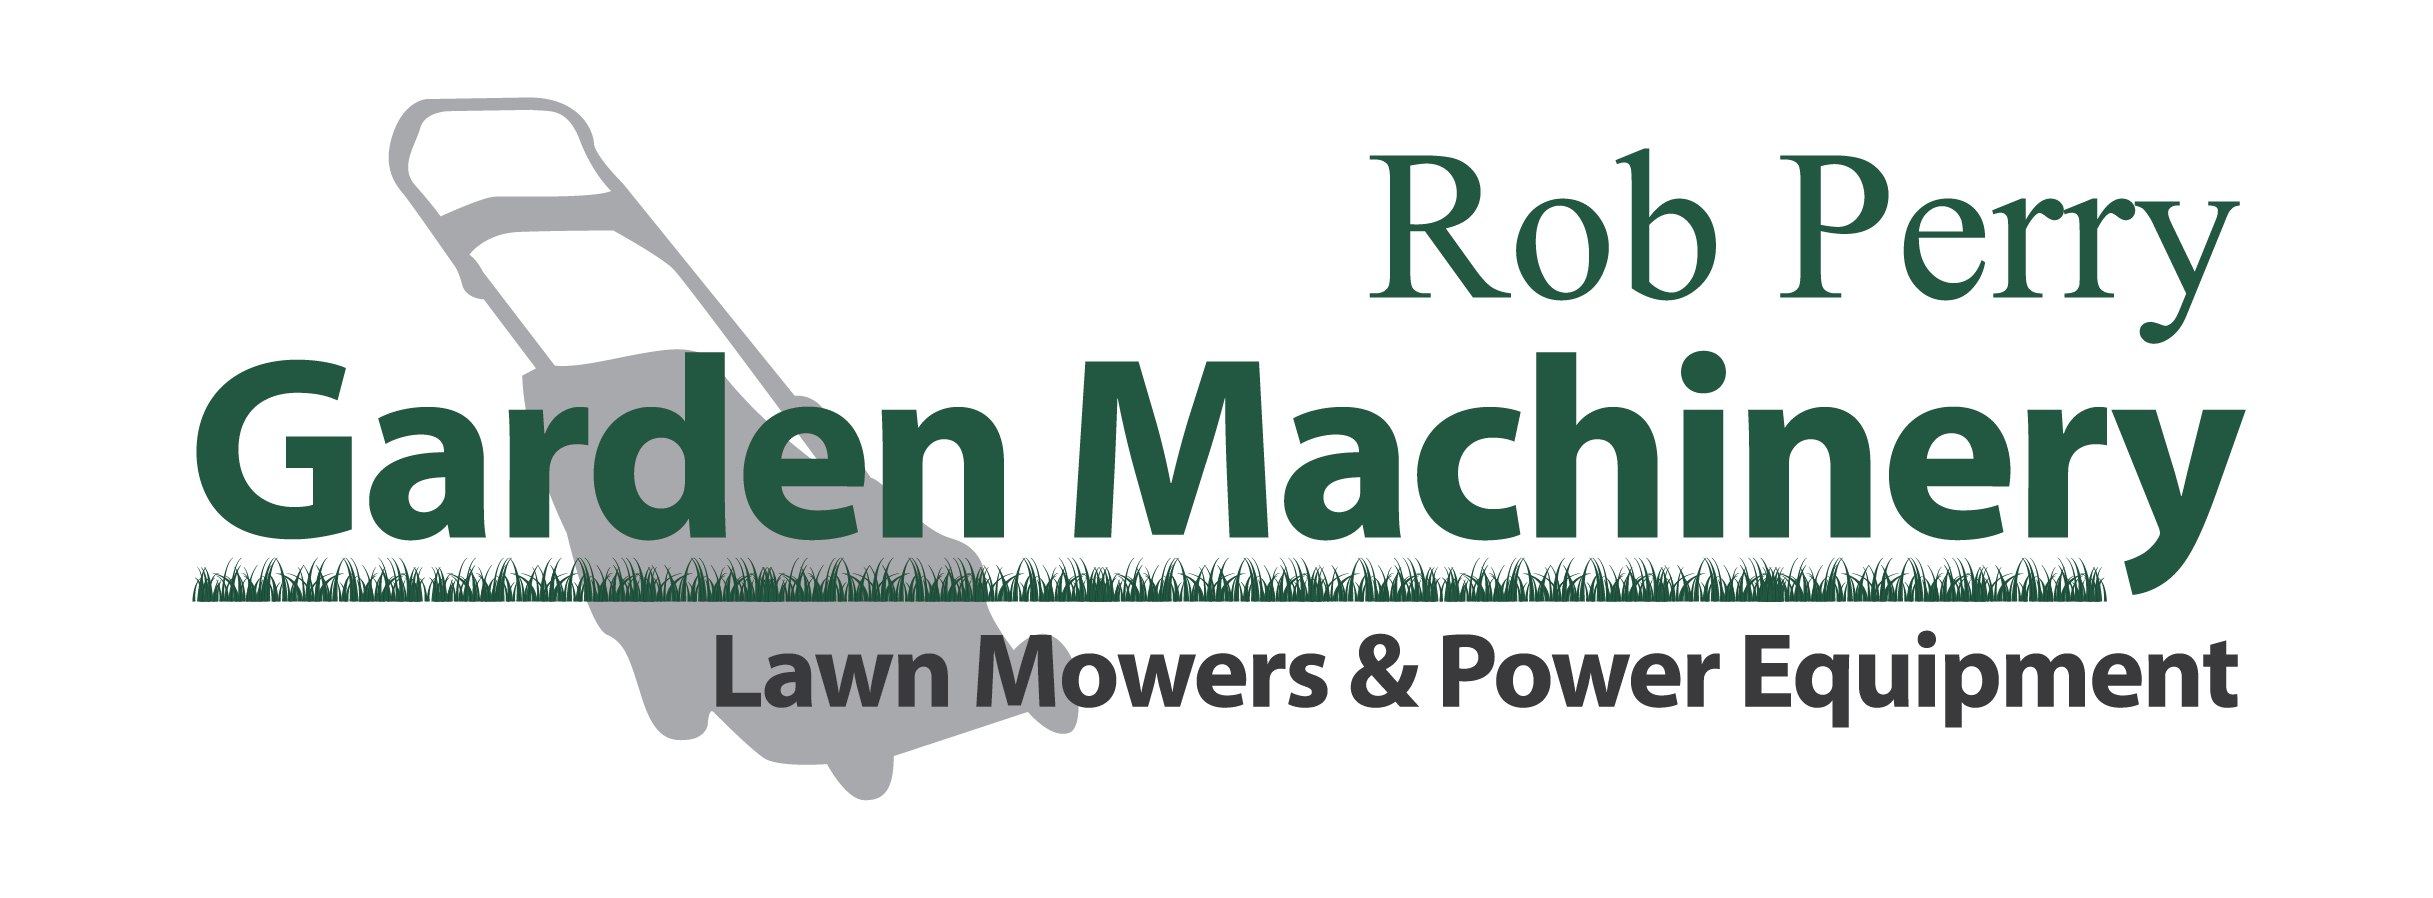 Rob Perry Garden Machinery